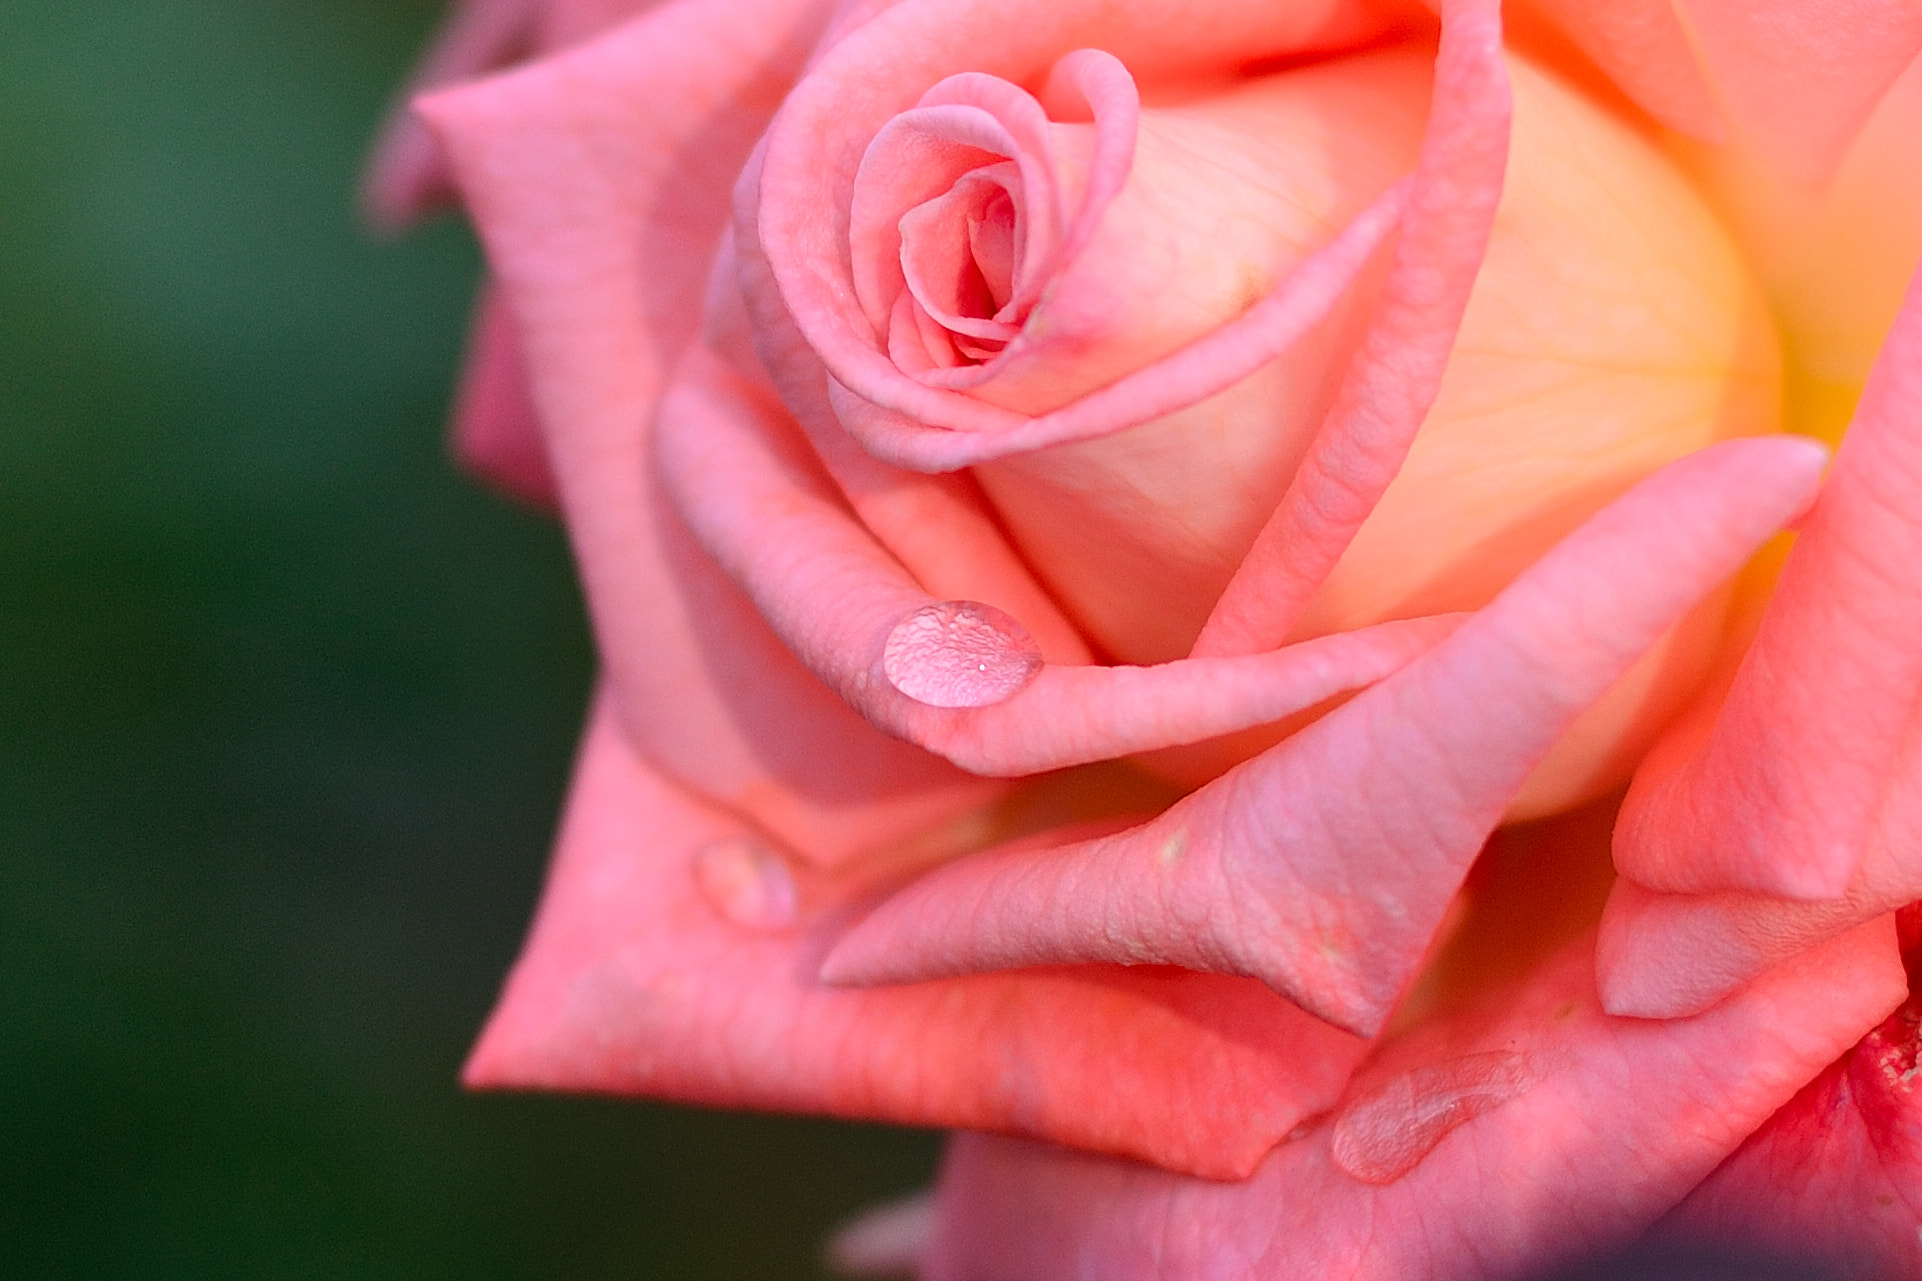 Photograph A Sentimental Rose by Takahiro Yanai on 500px